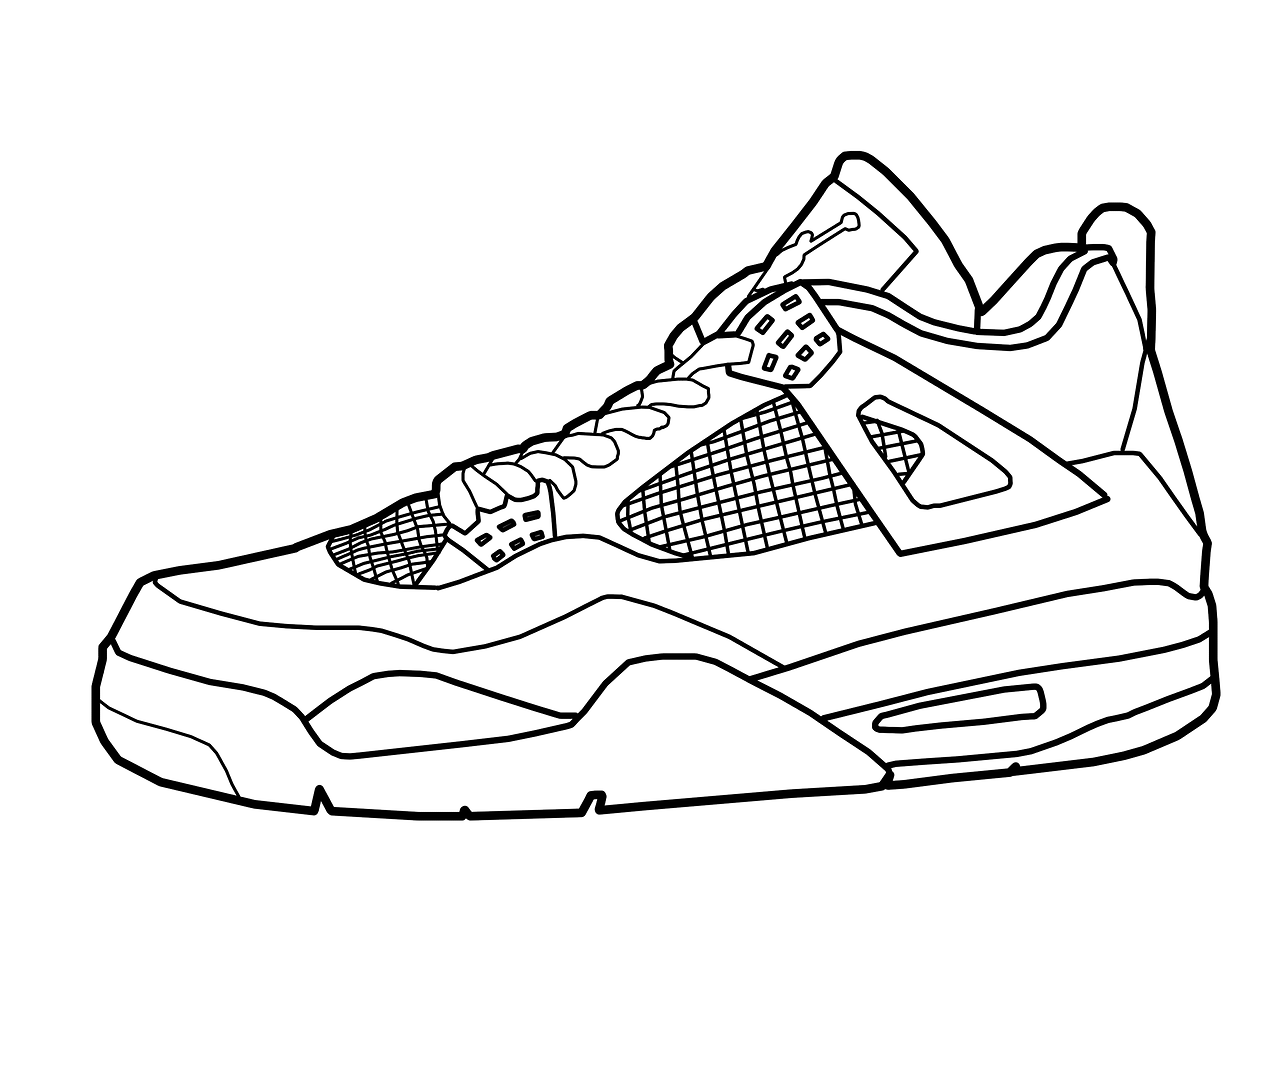 jordan coloring pages for kids - photo#11